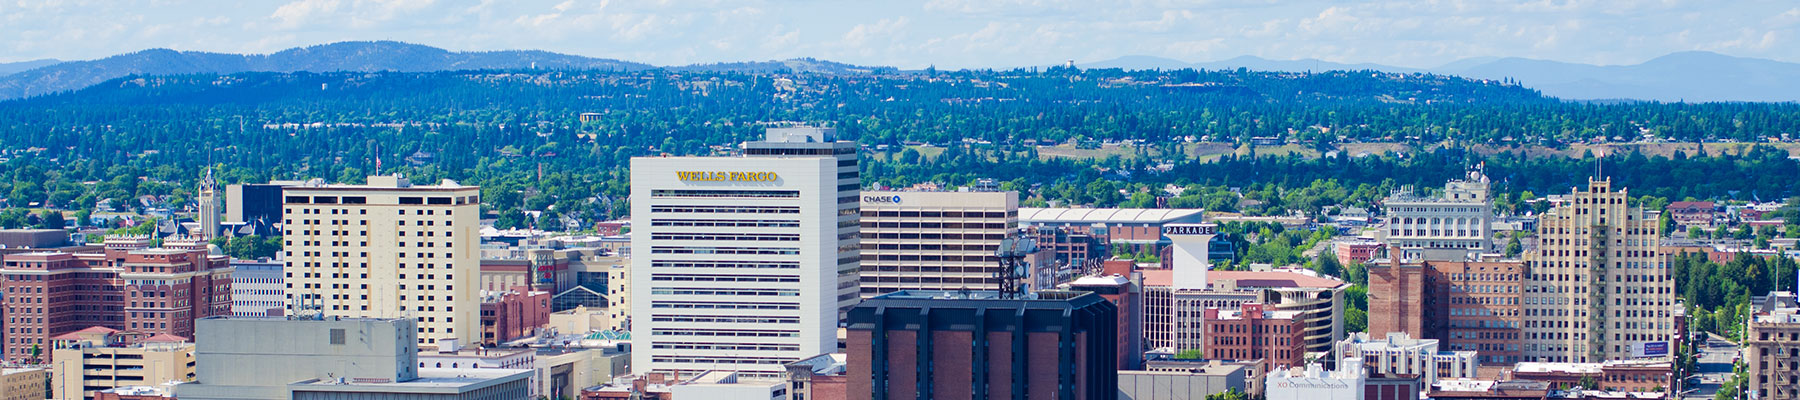 Downtown view of the buildings in Spokane.